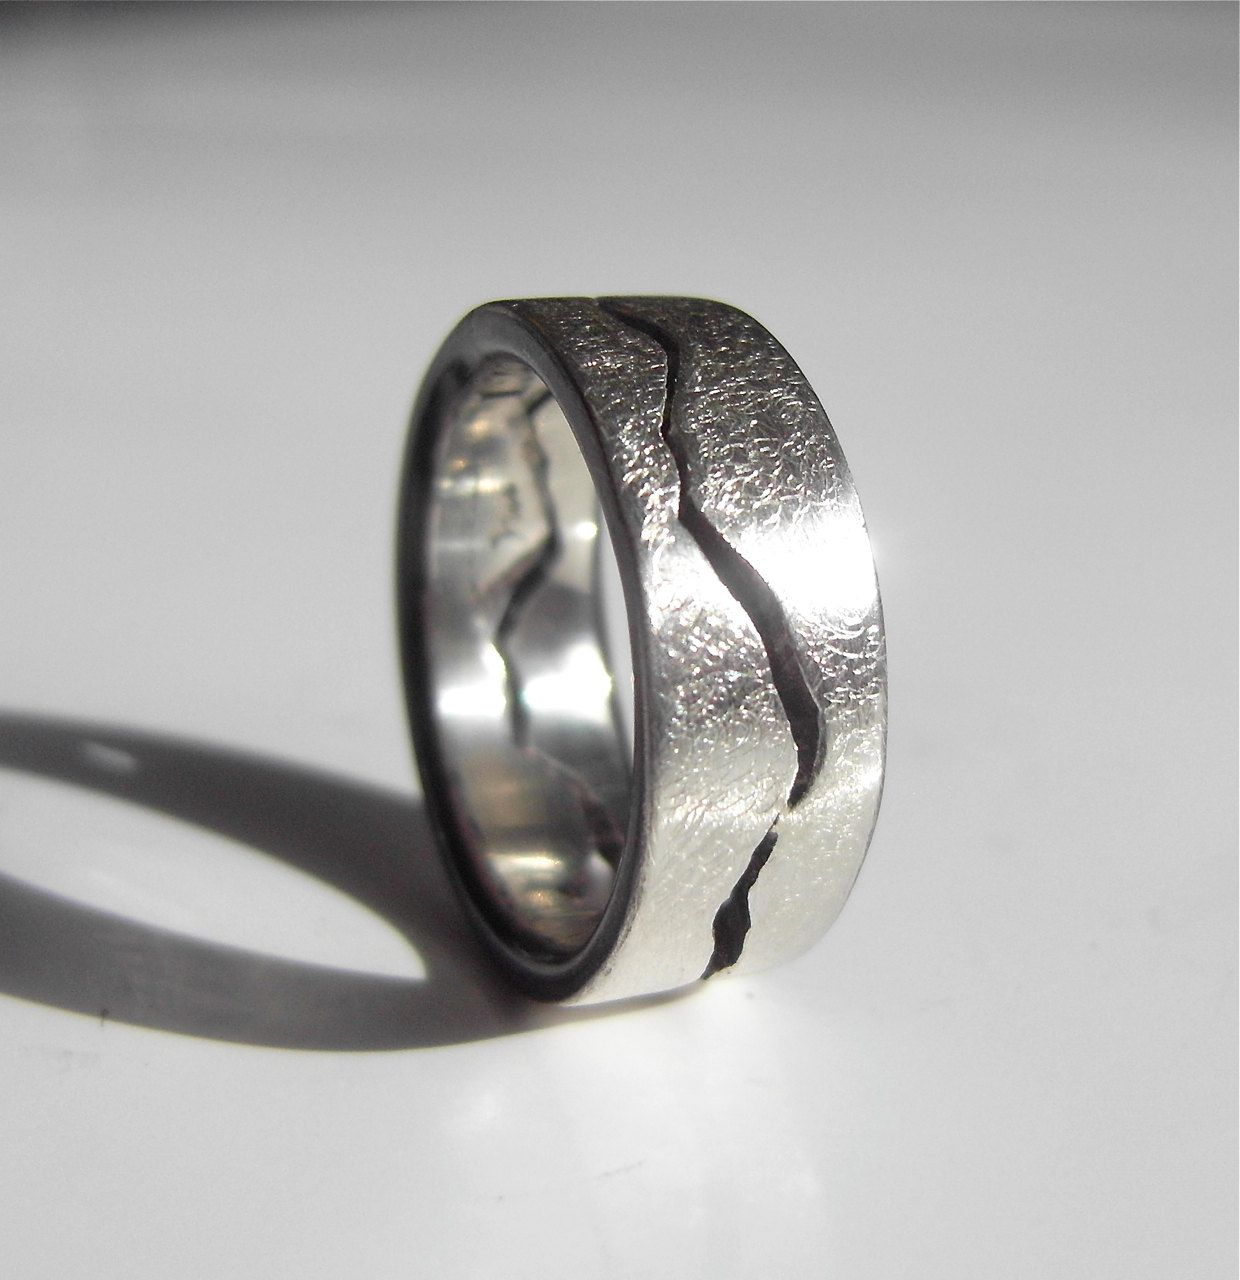 doctor who crack ring would make a beautiful wedding ring two parts of space - Dr Who Wedding Ring